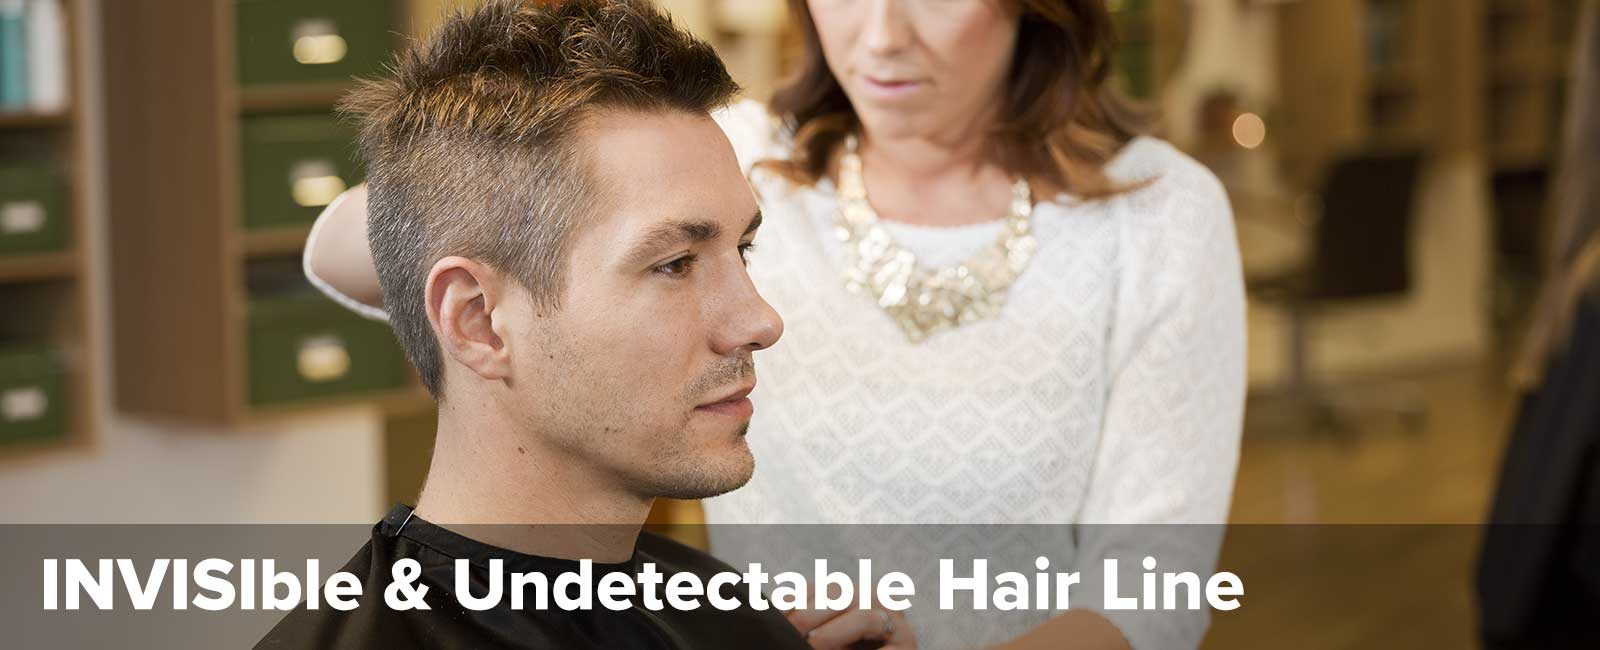 INVISIble Undetectable Hair Line